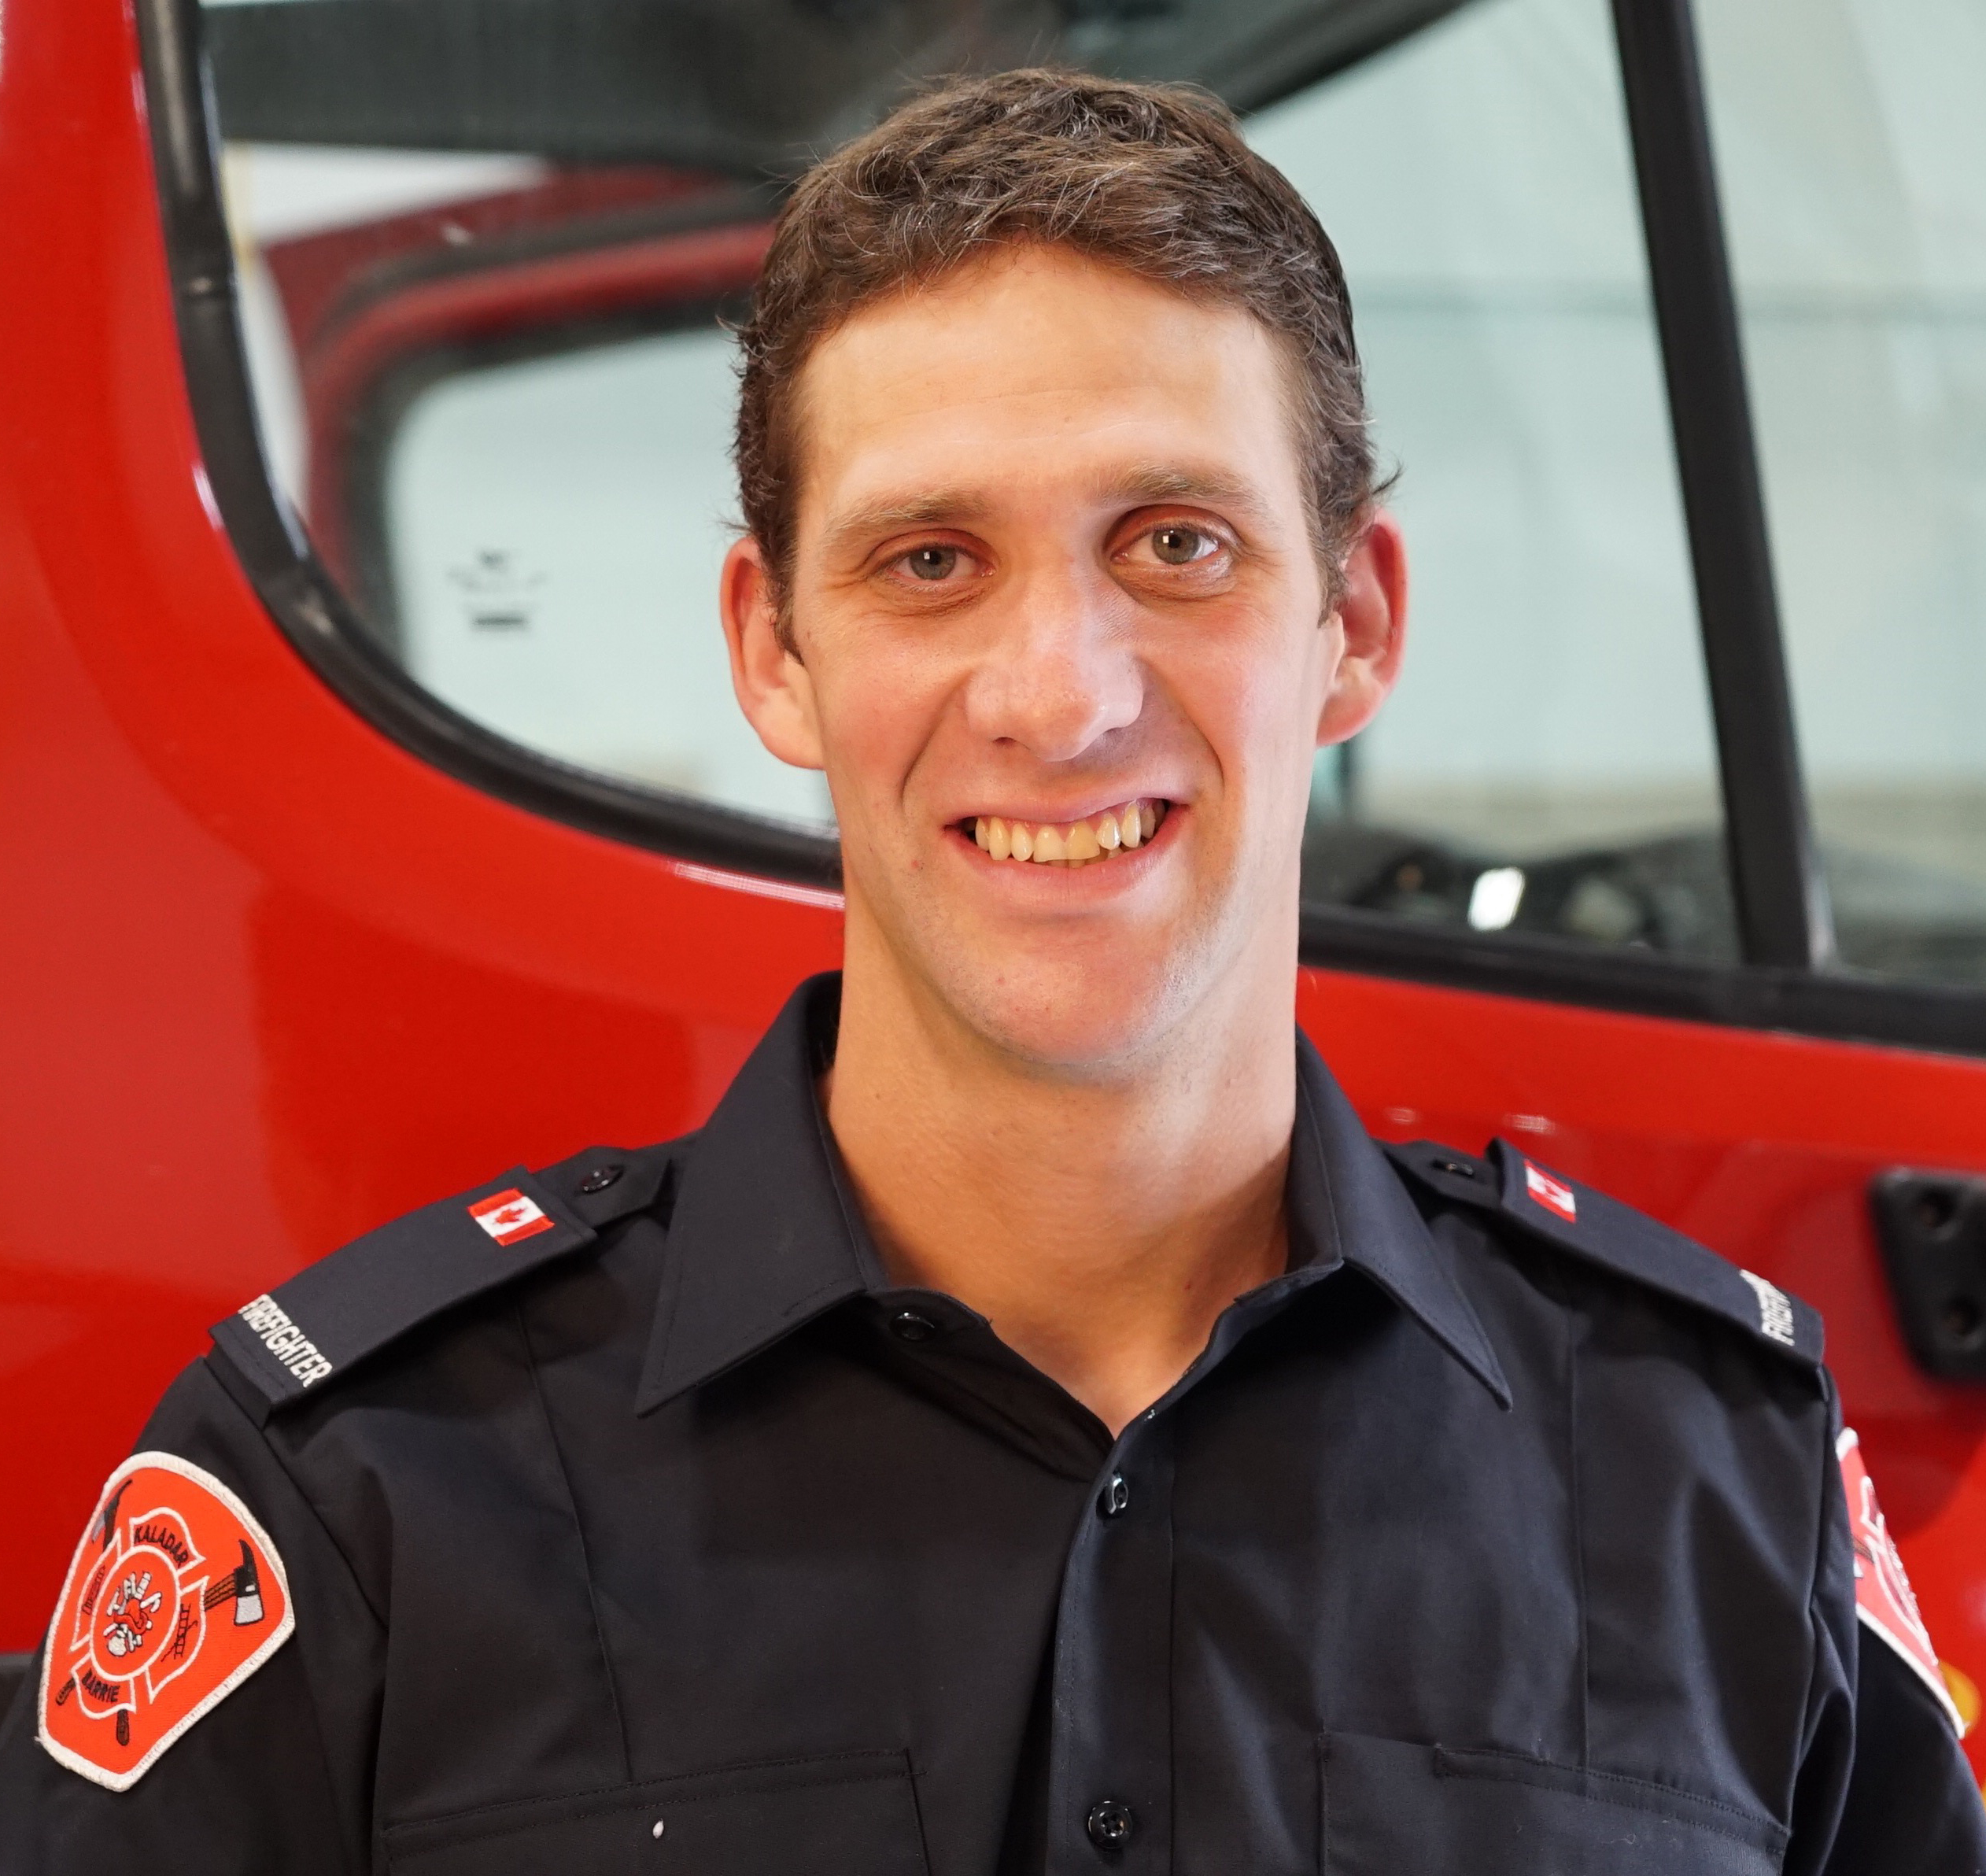 Jamie Miles, Firefighter